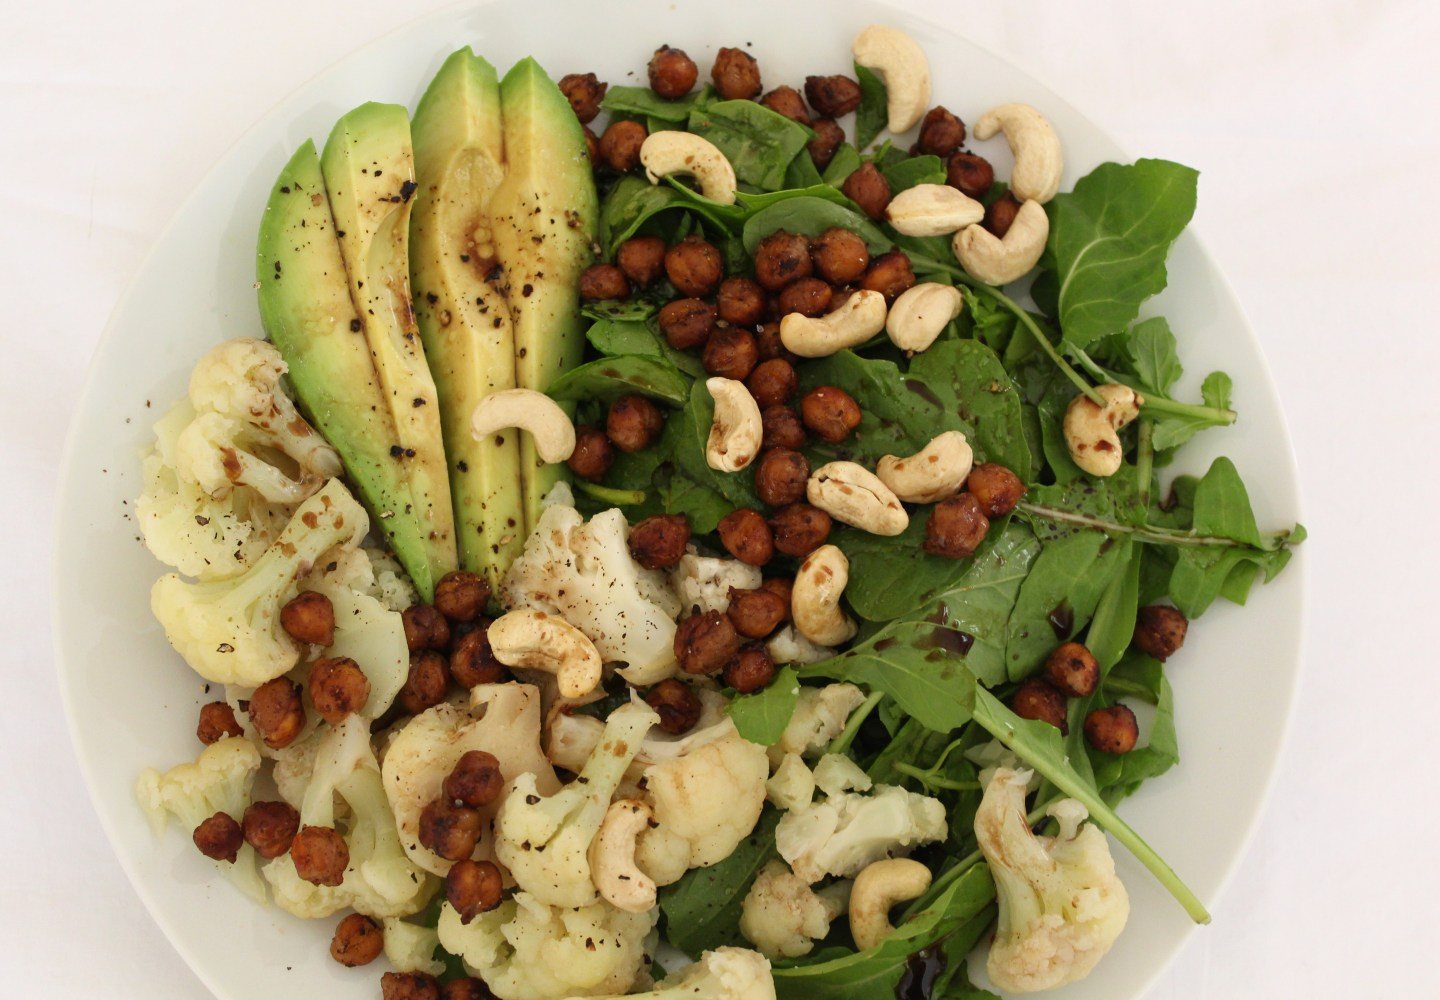 Roast Chickpea, Cauliflower & Cashew Salad with Balsamic Vinaigrette